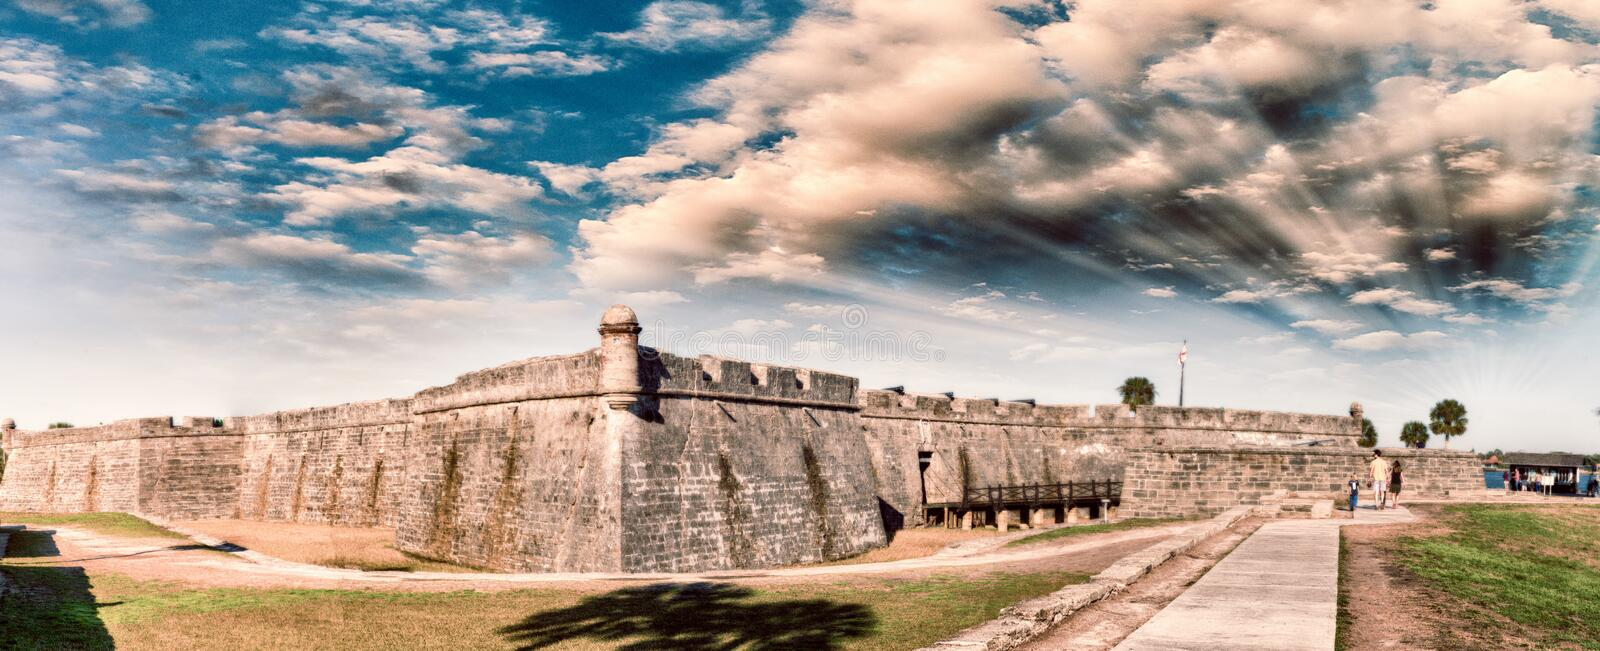 Panoramic sunset view of St Augustine medieval castle.  royalty free stock photo